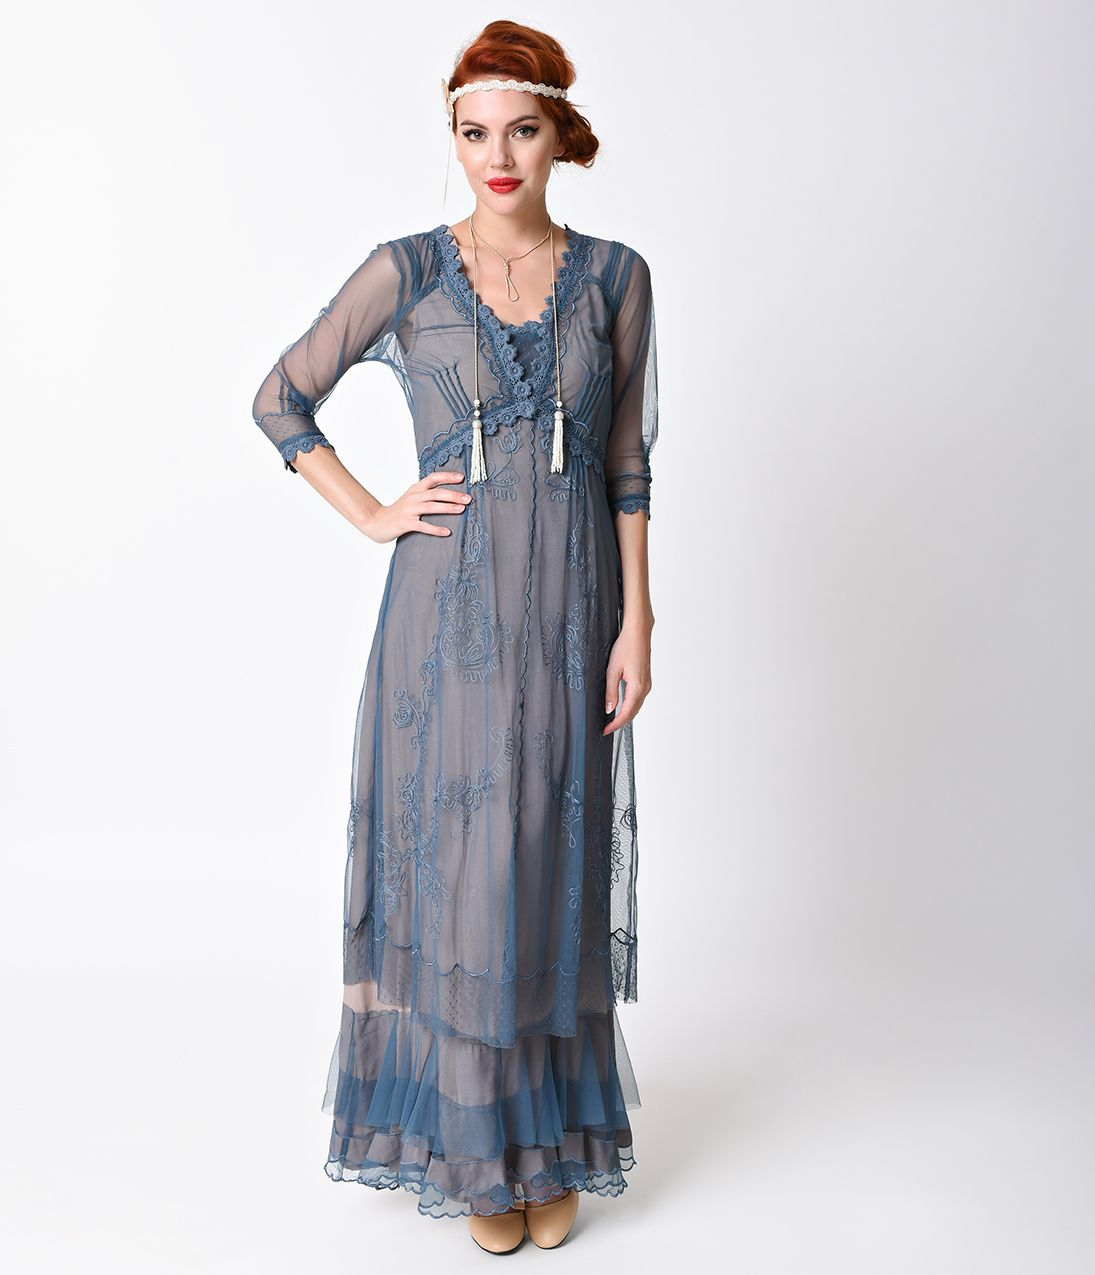 Victorian blue style dresses for sale photo forecast to wear for summer in 2019